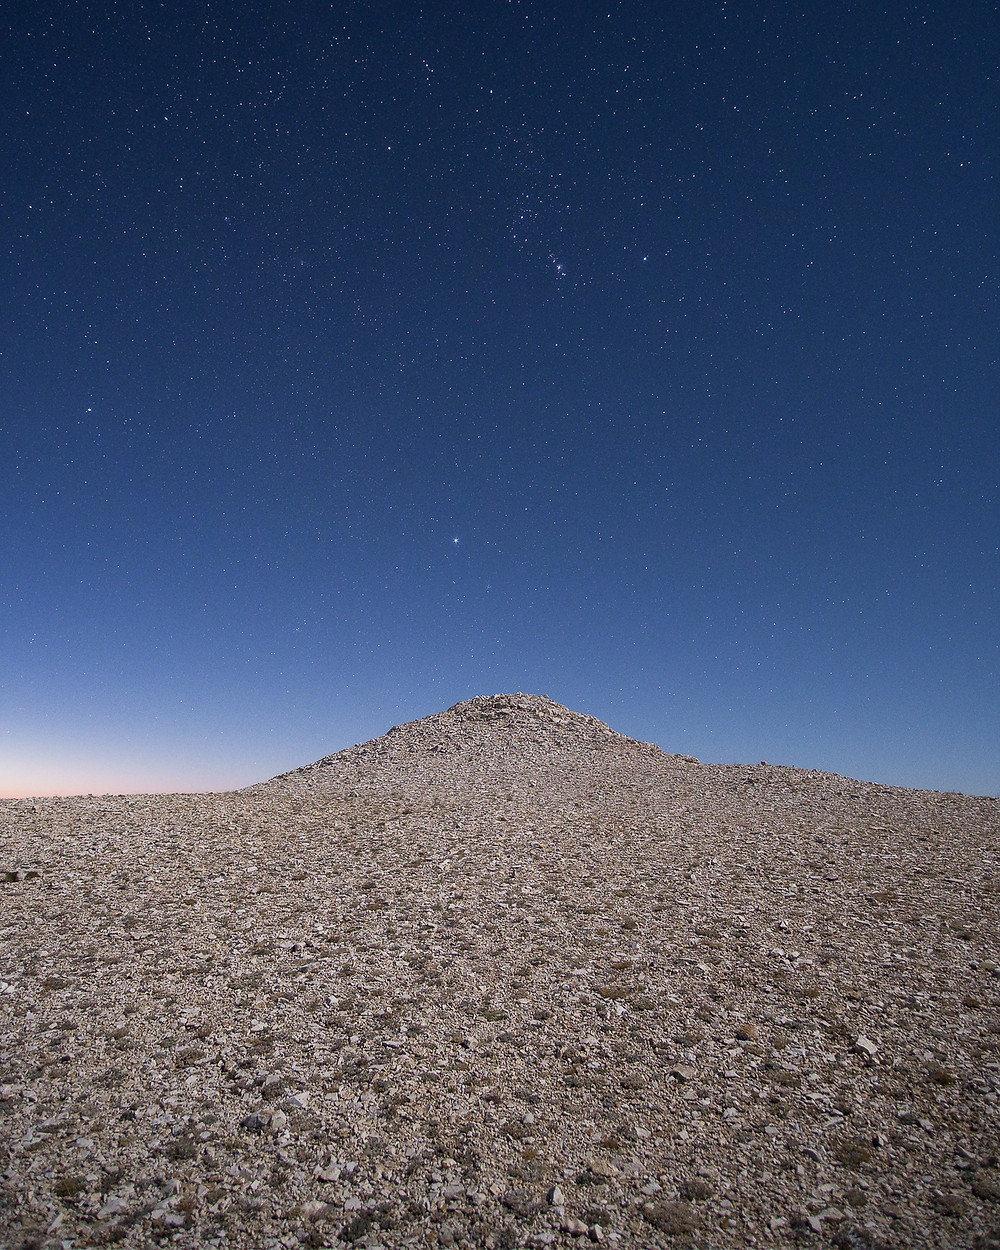 Moonlit White Mountains California with the Orion Constellation.